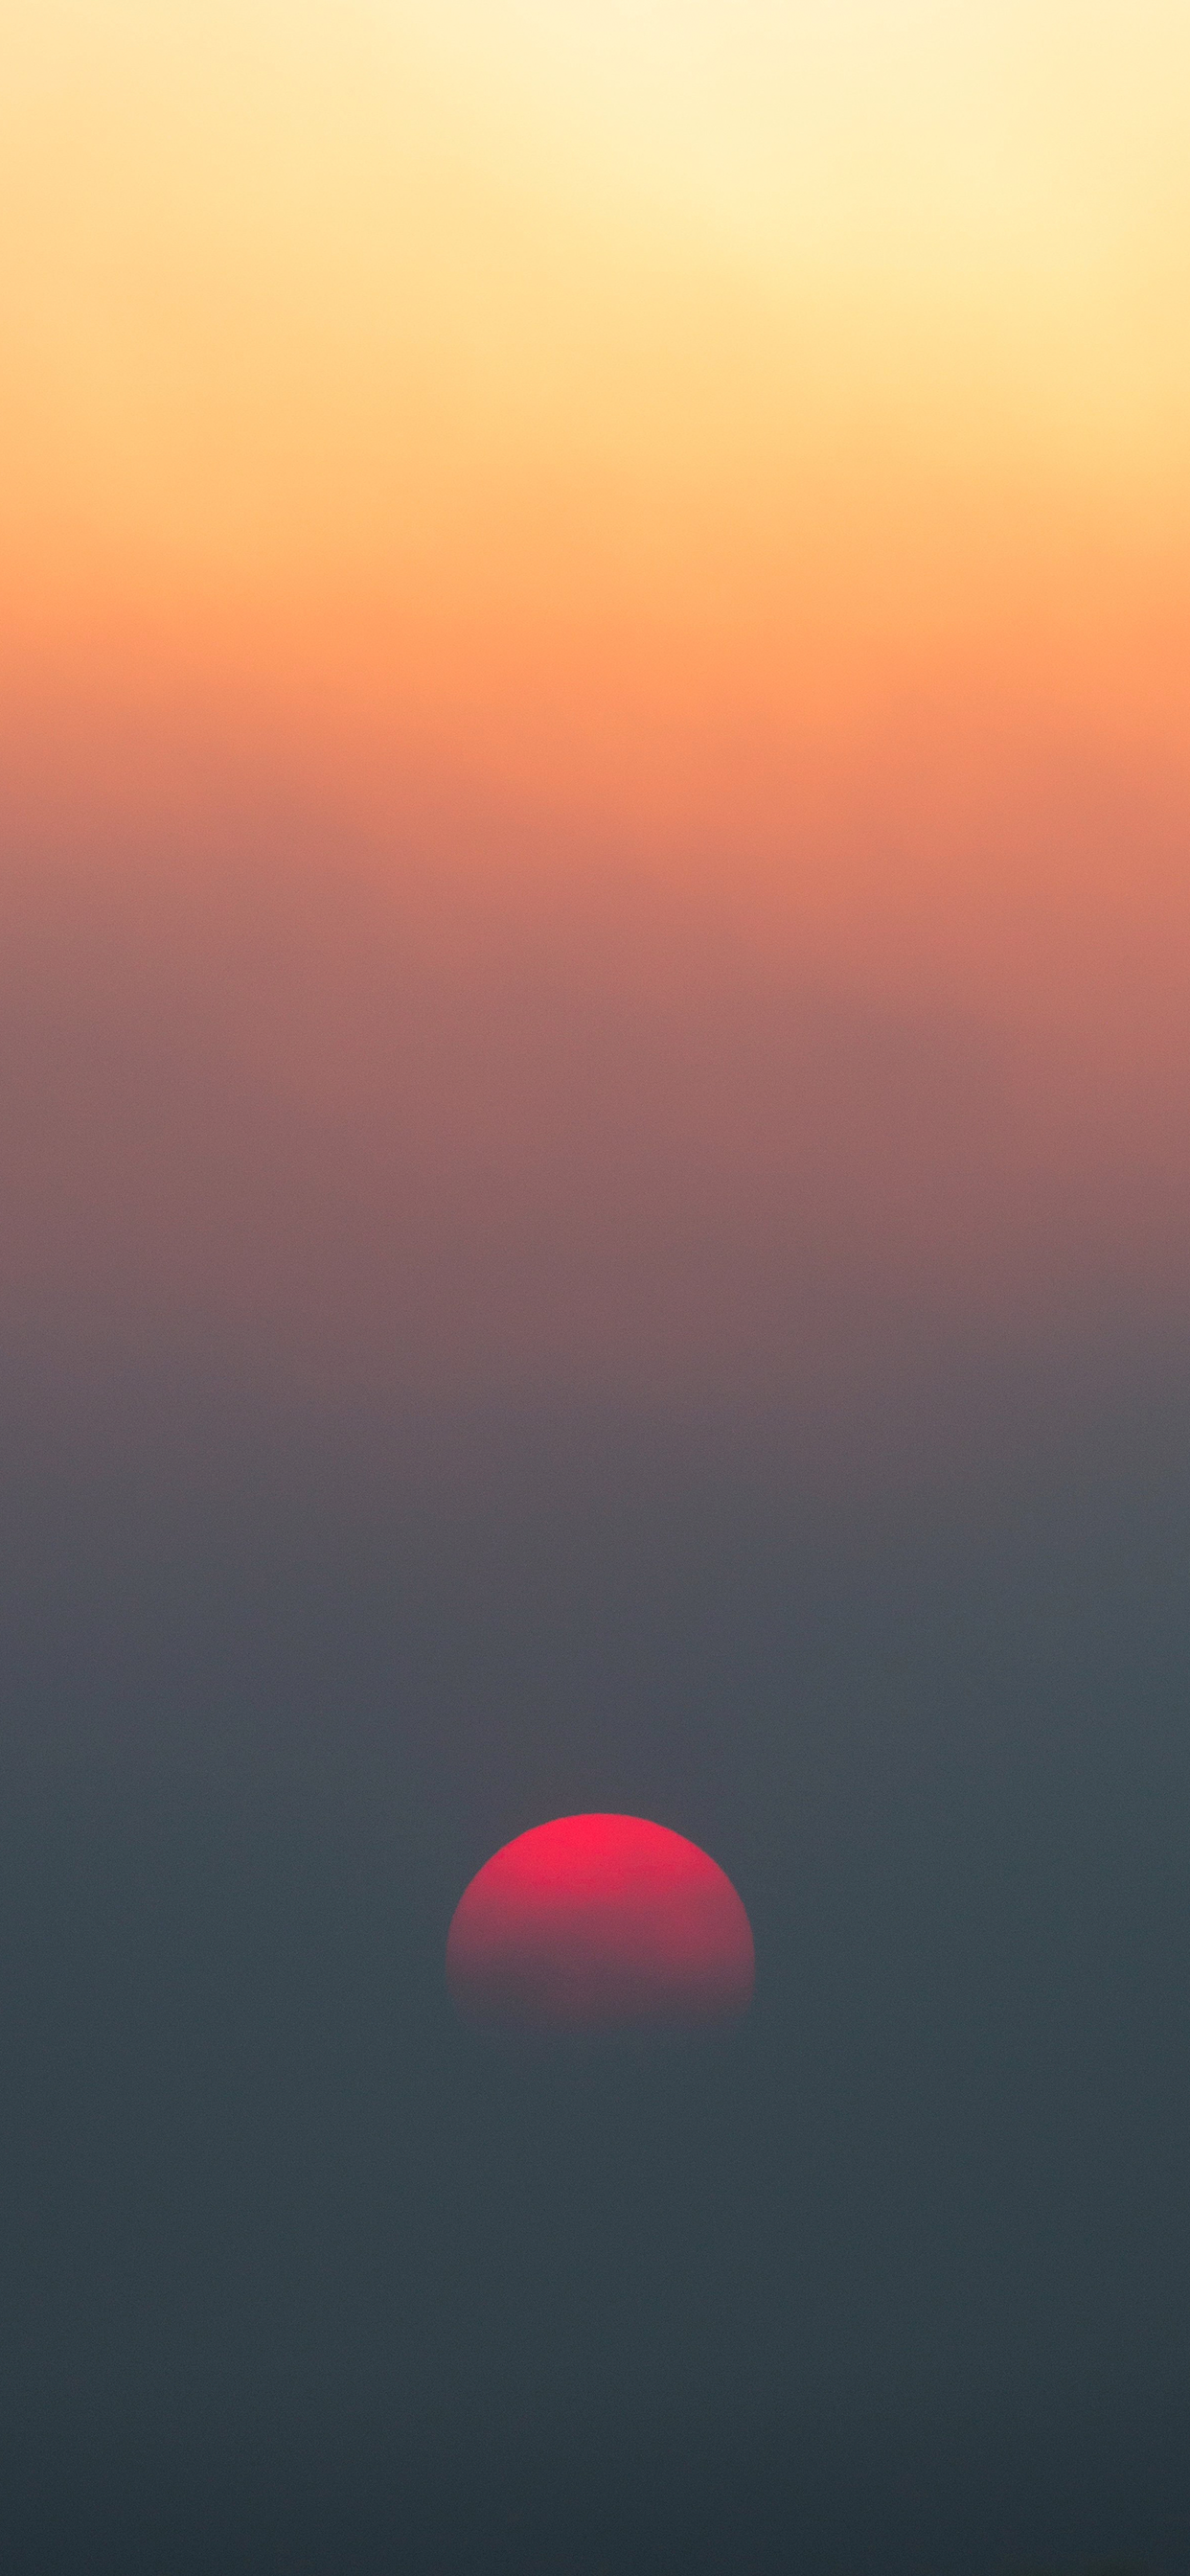 iPhone wallpaper gradients red moon Fonds d'écran iPhone du 27/11/2018